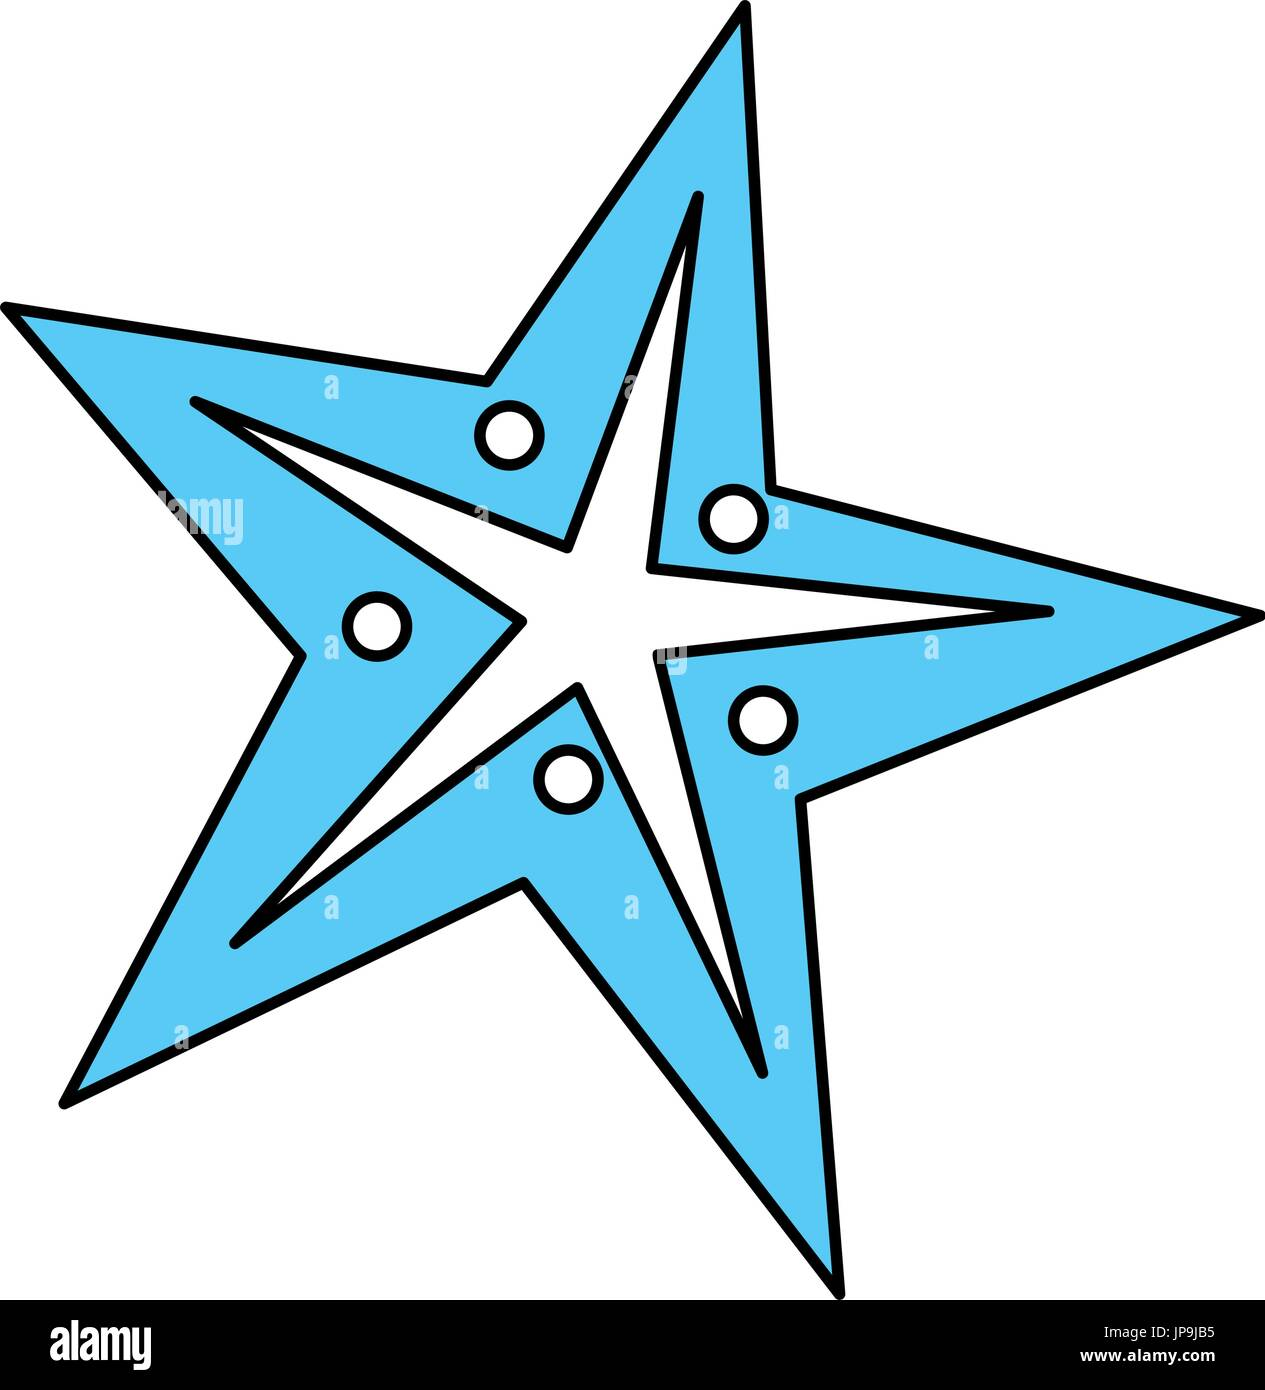 starfish vector illustration - Stock Image